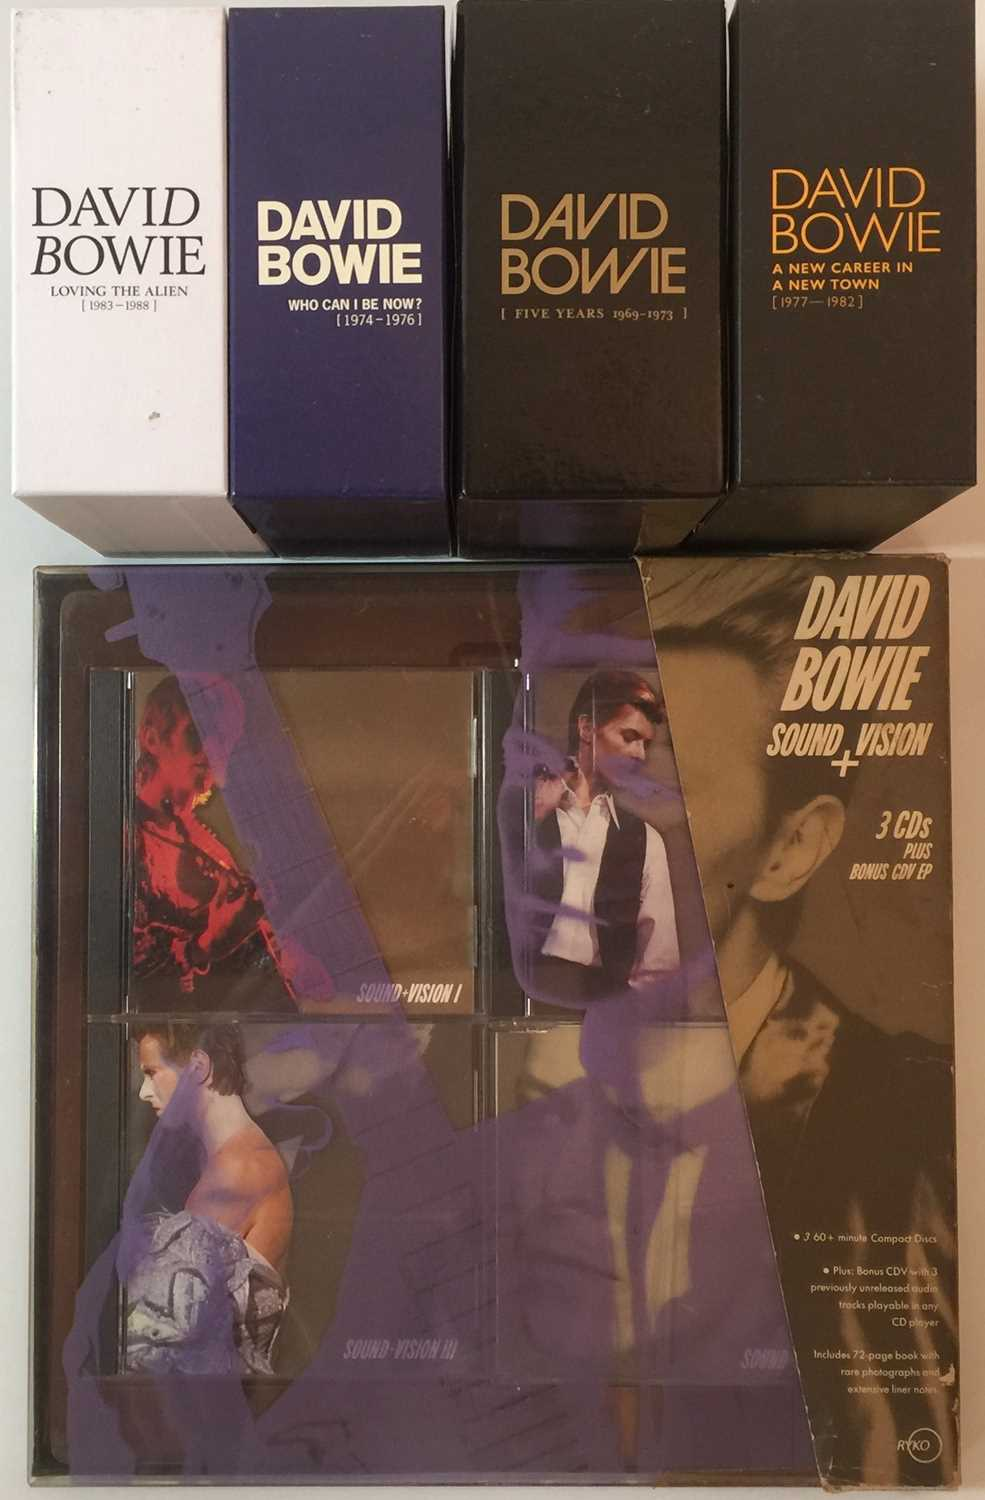 DAVID BOWIE - LIMITED EDITION CD BOX SET RELEASES